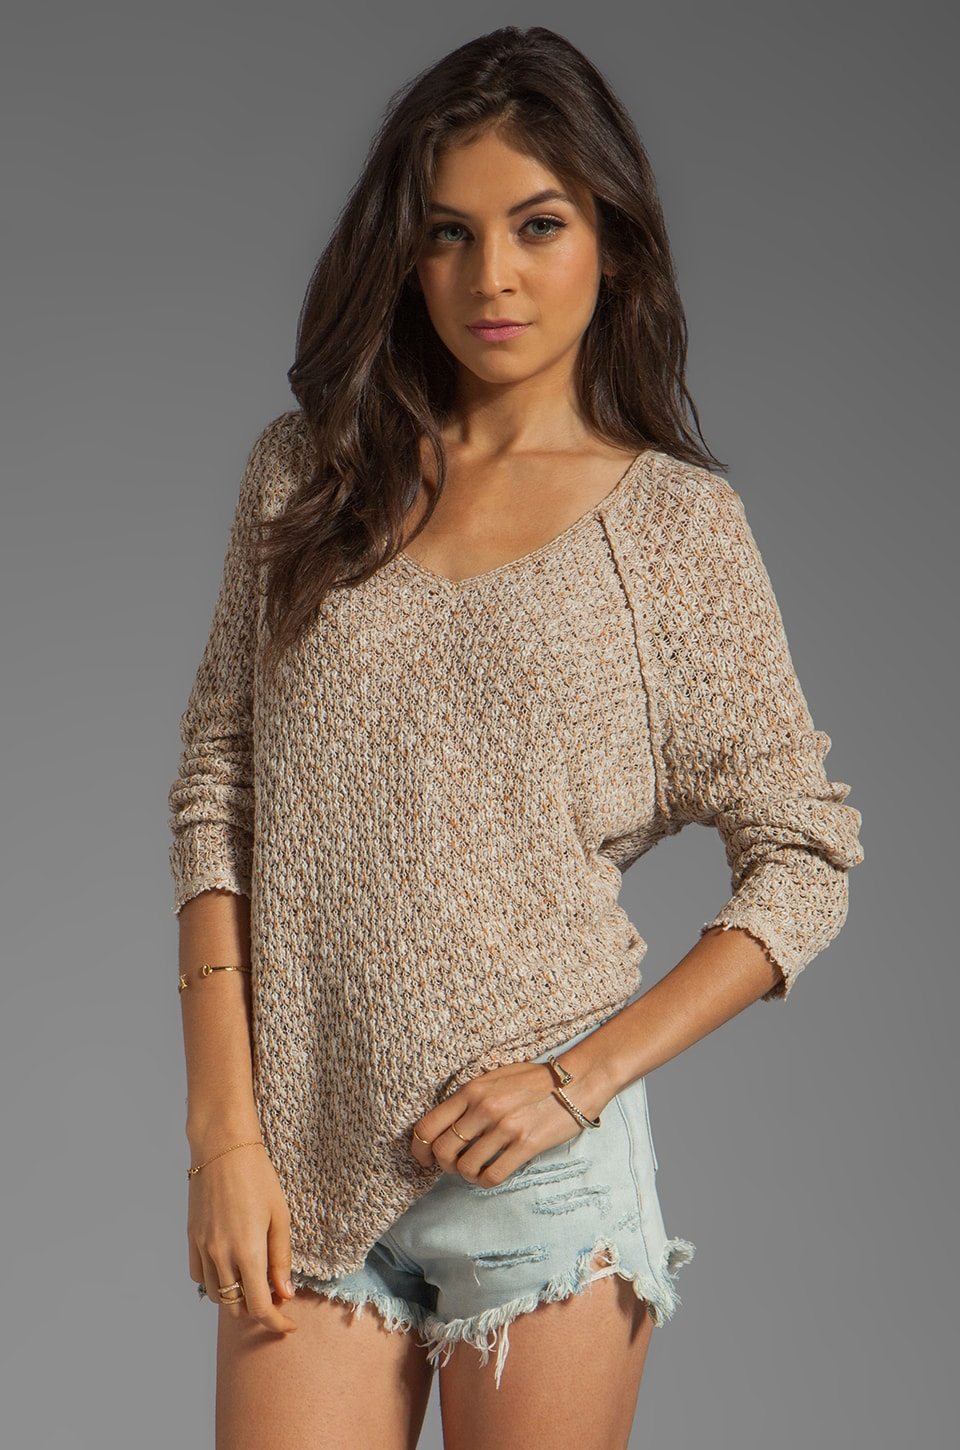 Free People Poppyseed Pullover in Oatmeal/Amber Combo